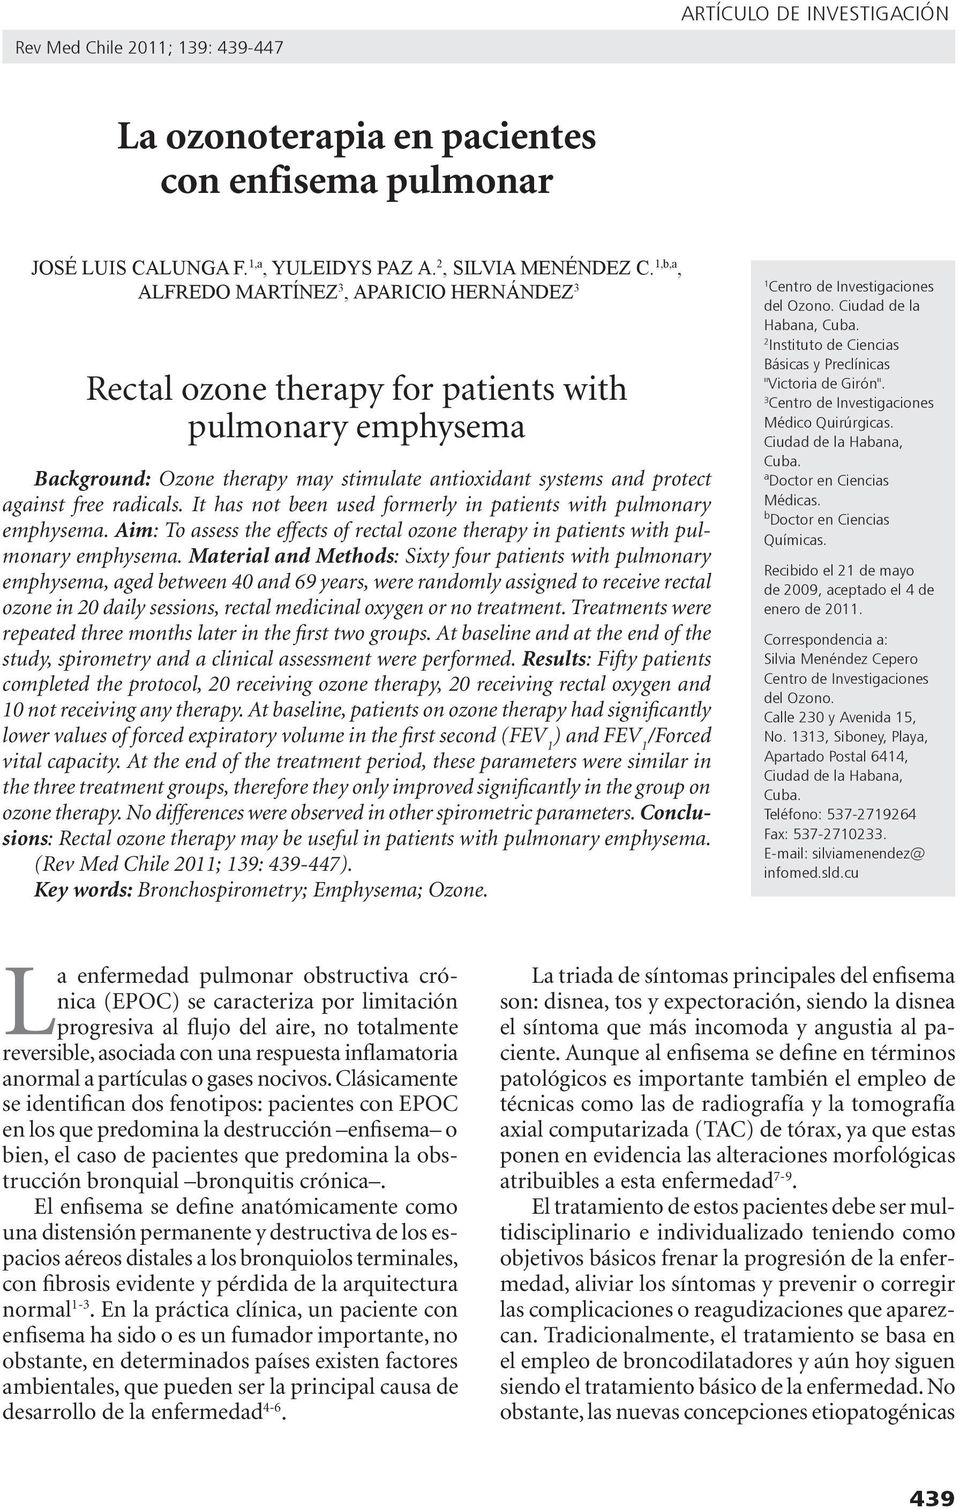 It has not been used formerly in patients with pulmonary emphysema. Aim: To assess the effects of rectal ozone therapy in patients with pulmonary emphysema.